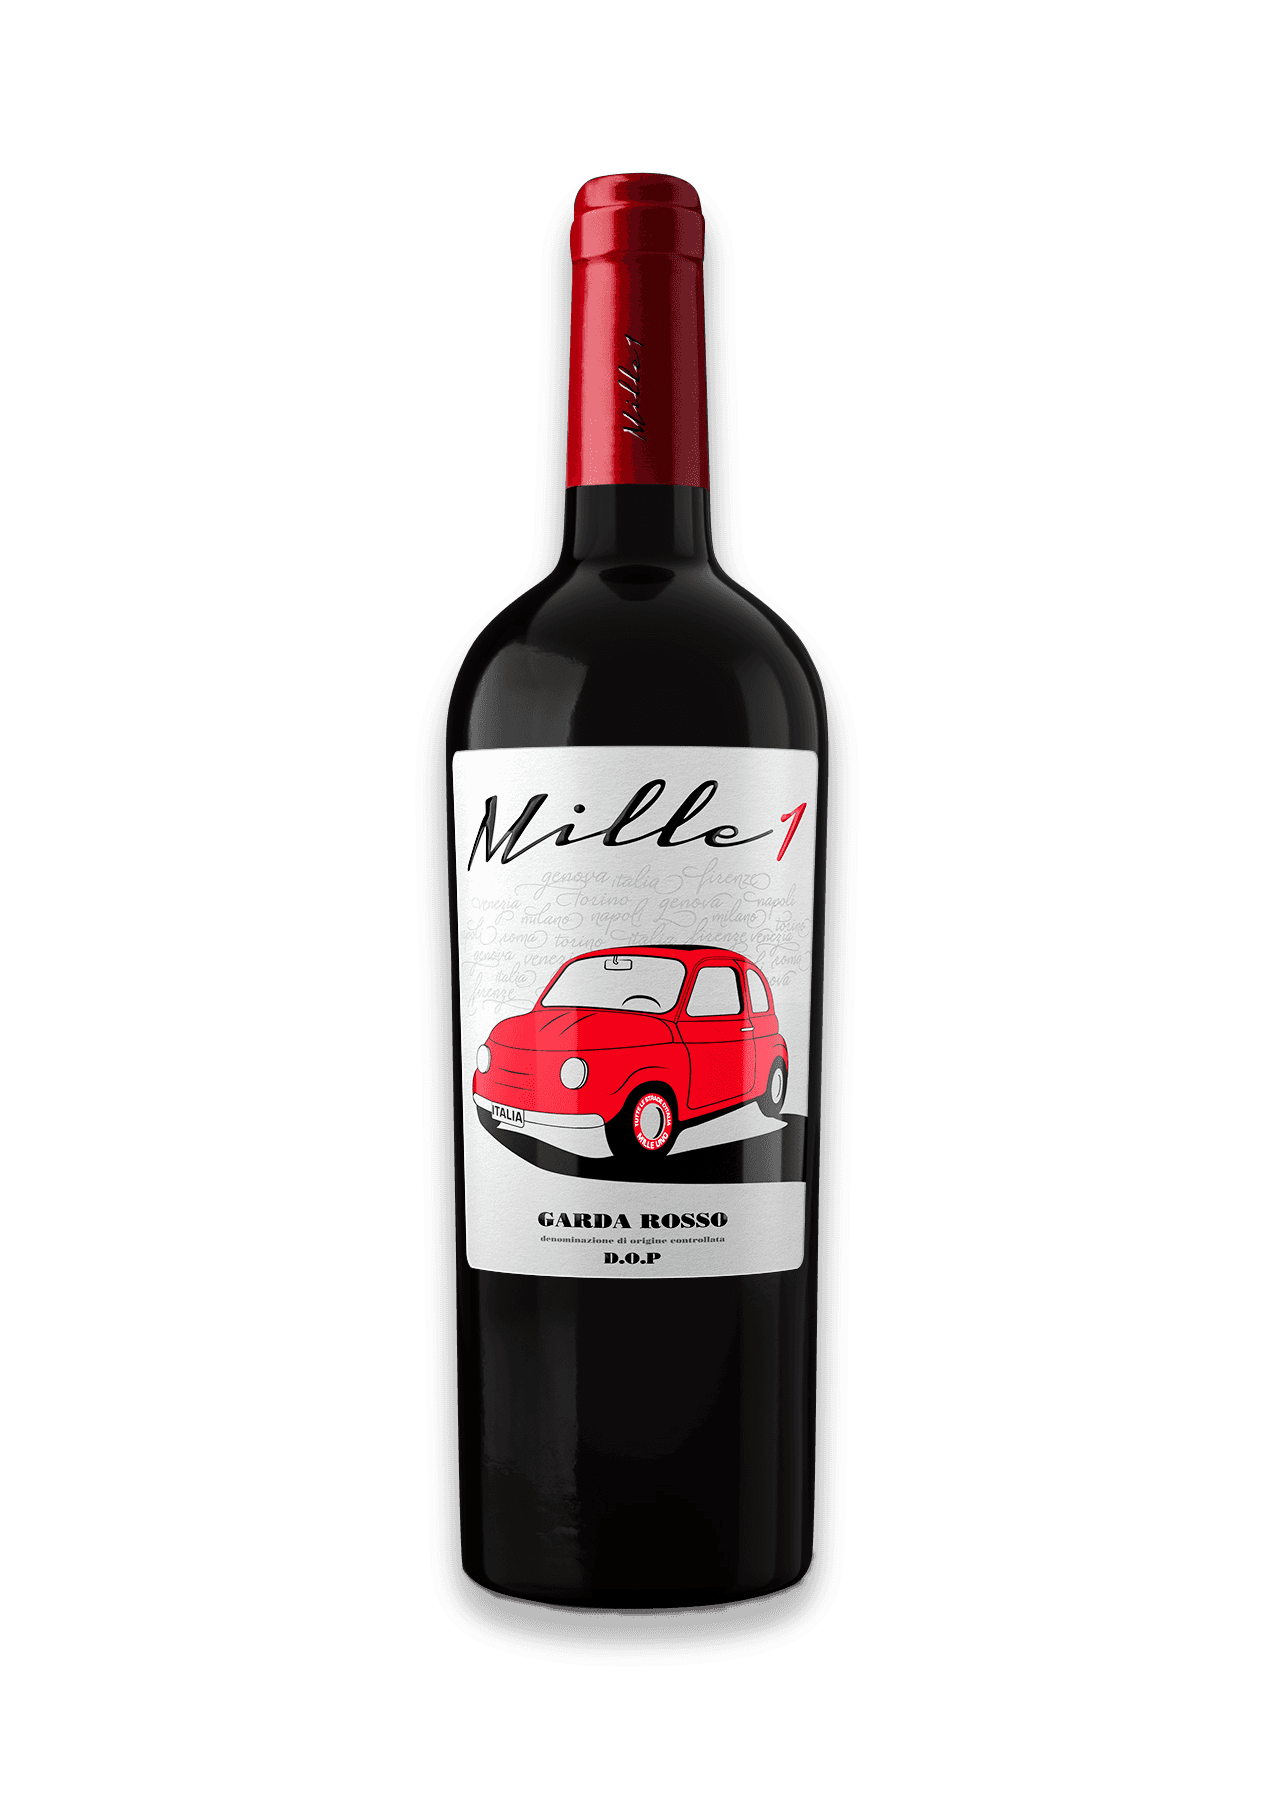 Mille1 Italian red wine bottle